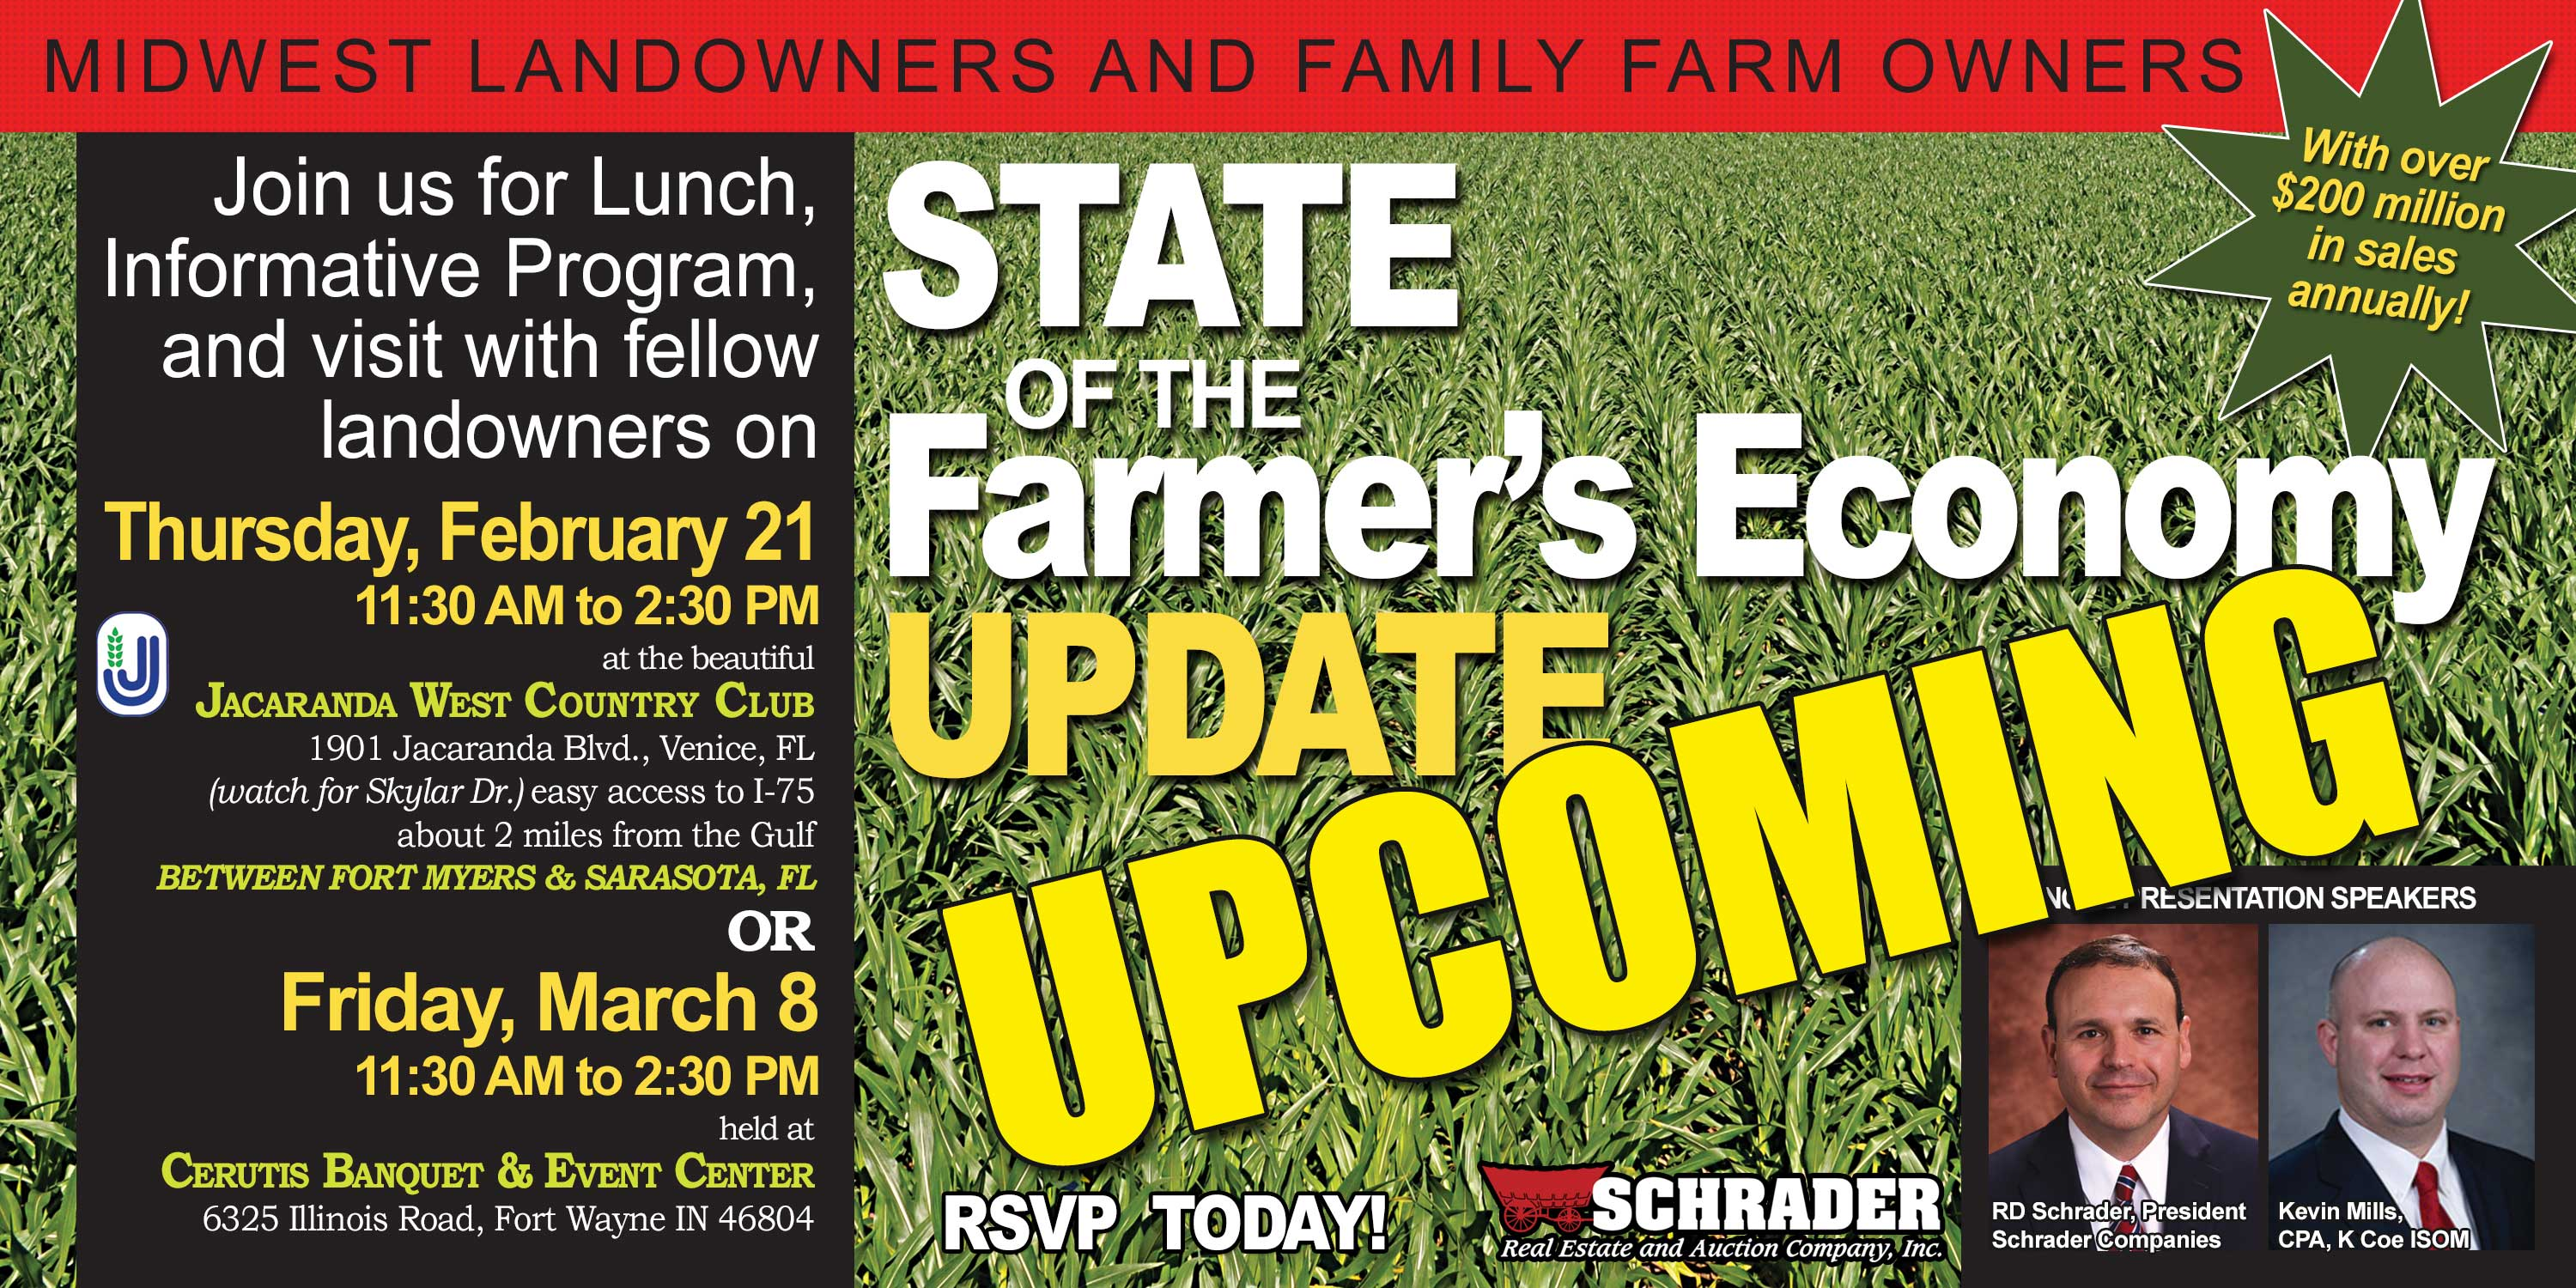 Midwest Landowners and Family Farm Owners Meeting